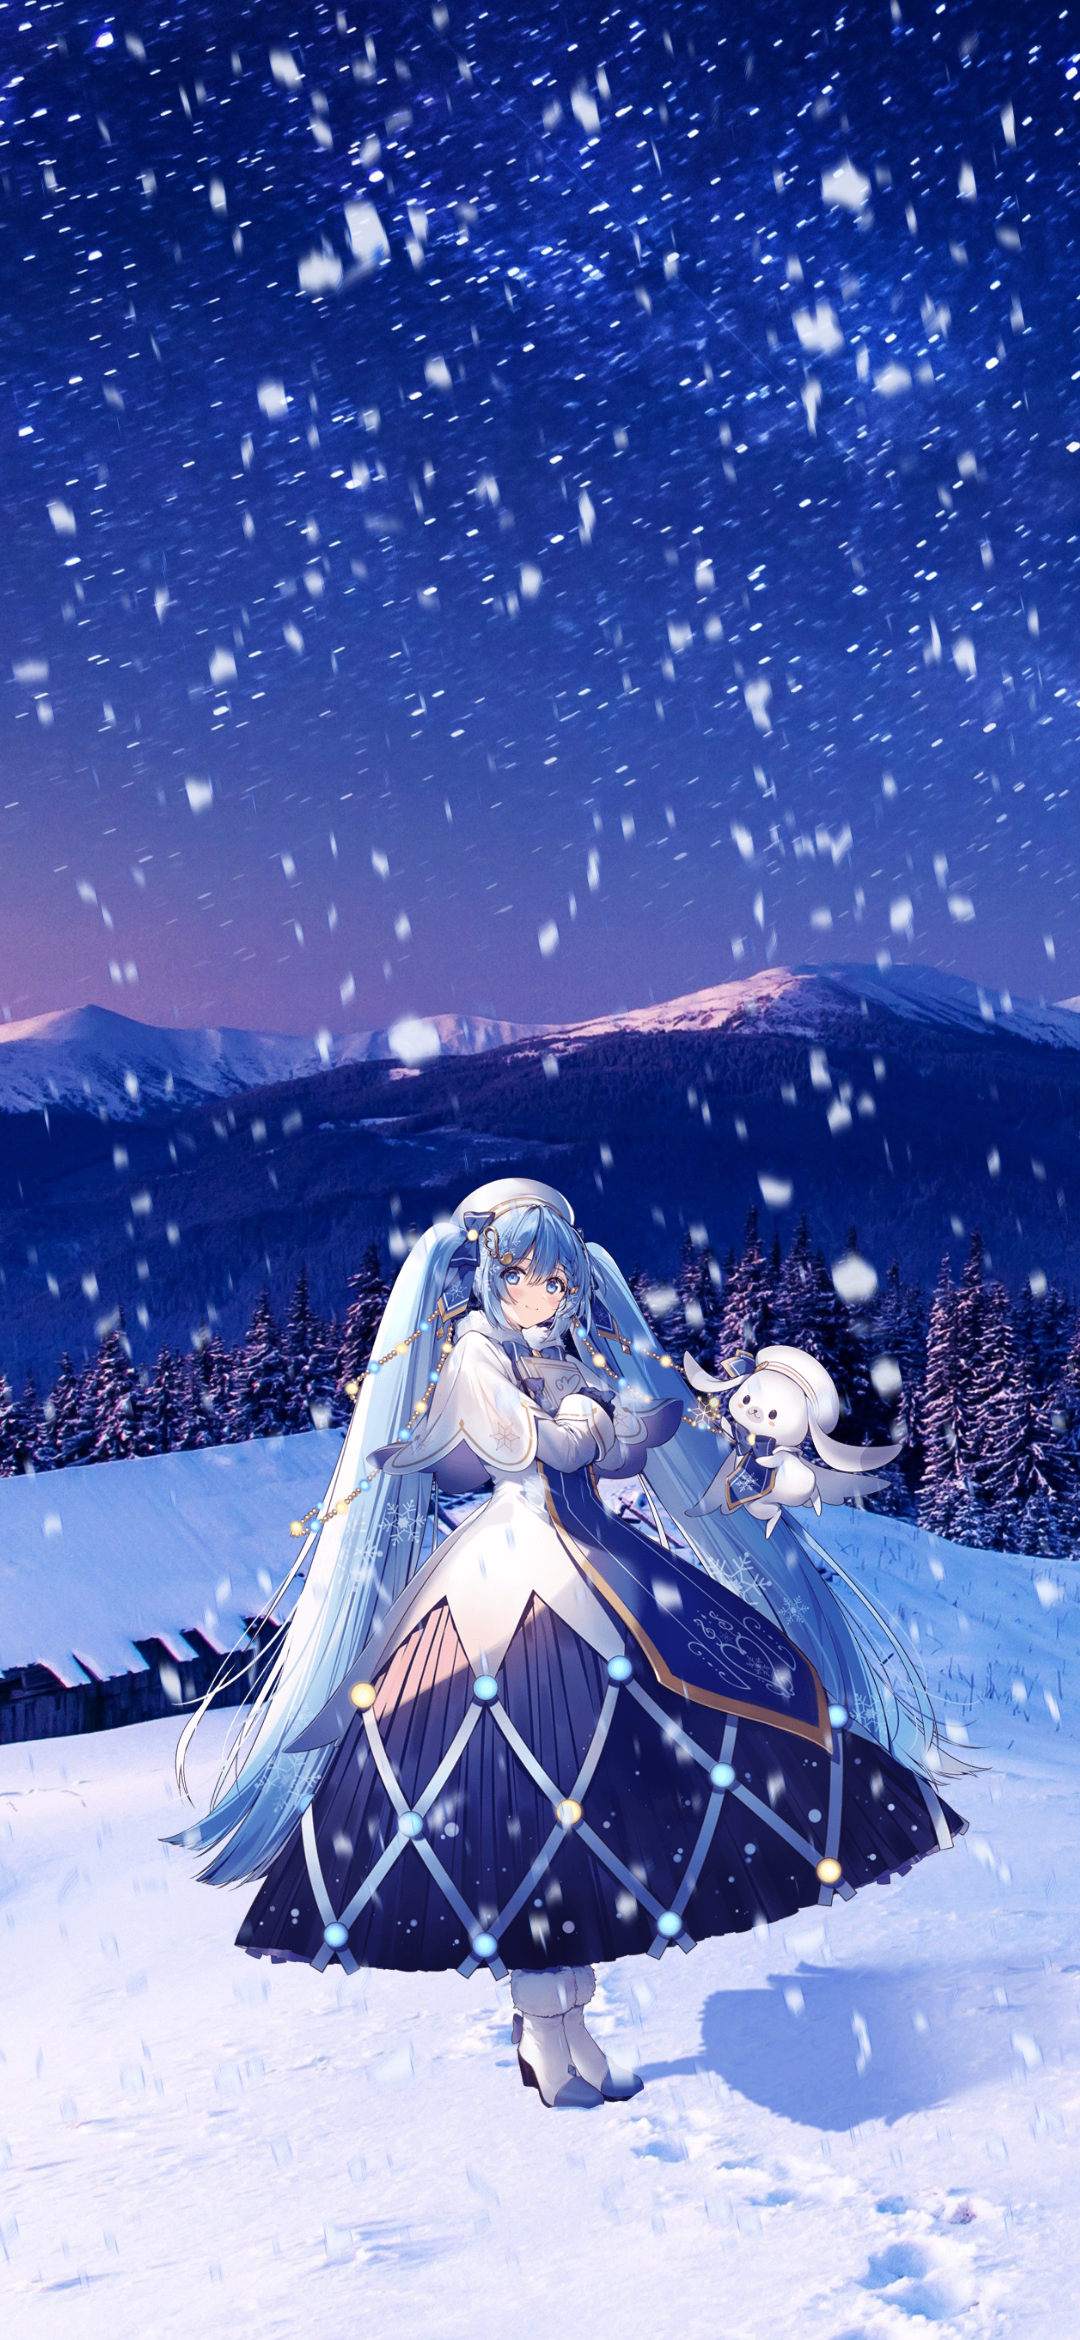 Thought yall might enjoy these snow Miku 2021 wallpapers I edited 1080x2340